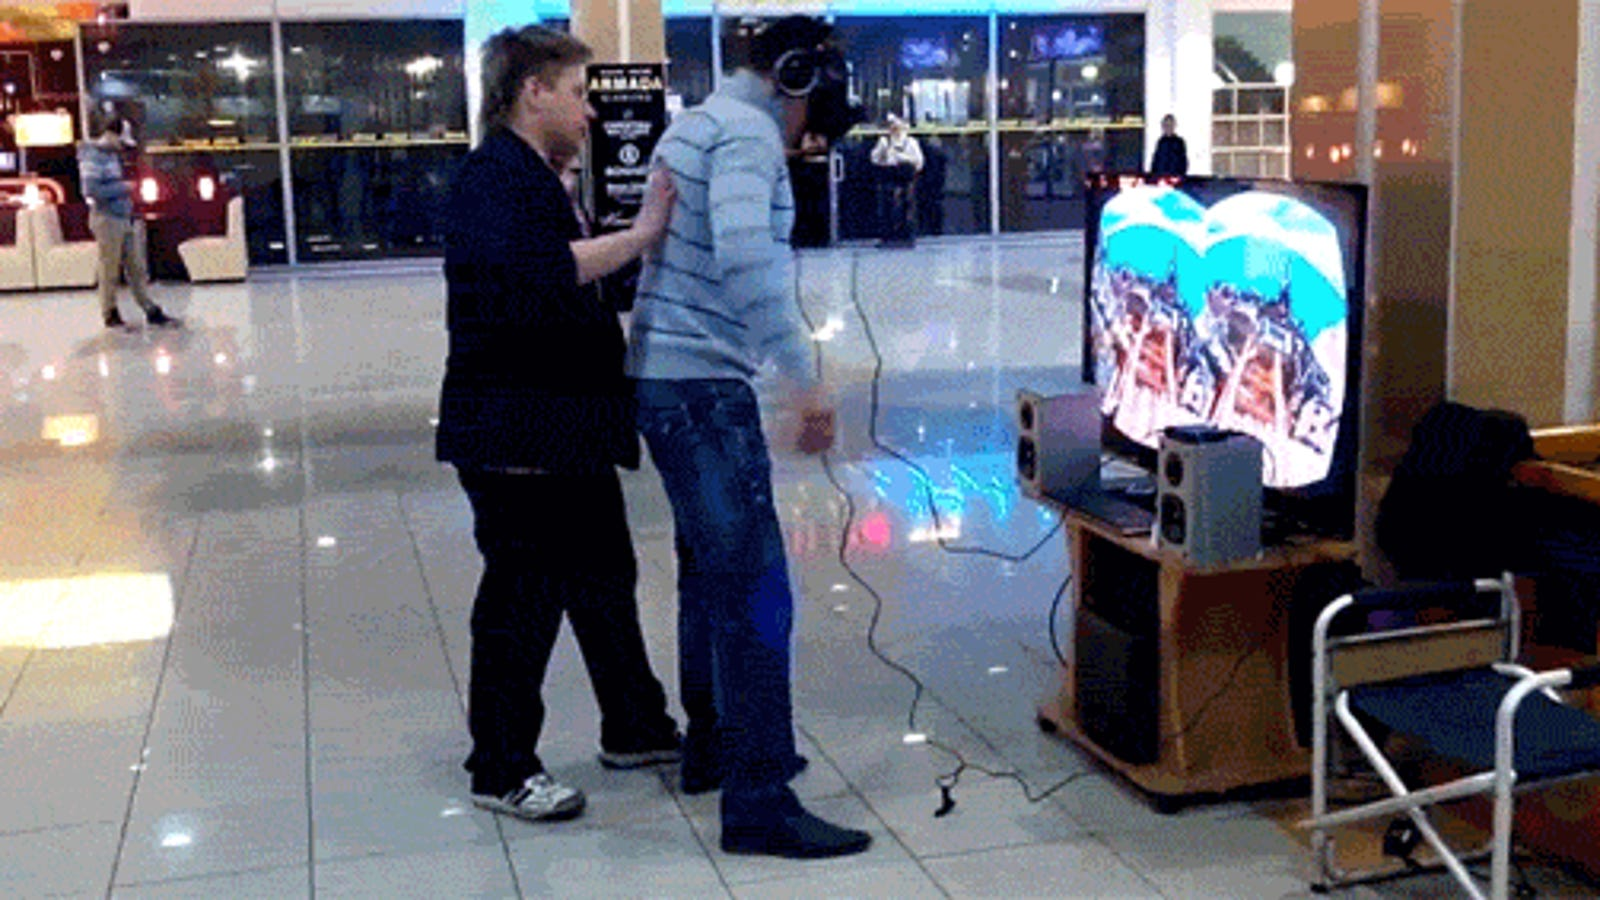 A Bunch of People Wearing Oculus Rifts and Falling on Their Butts